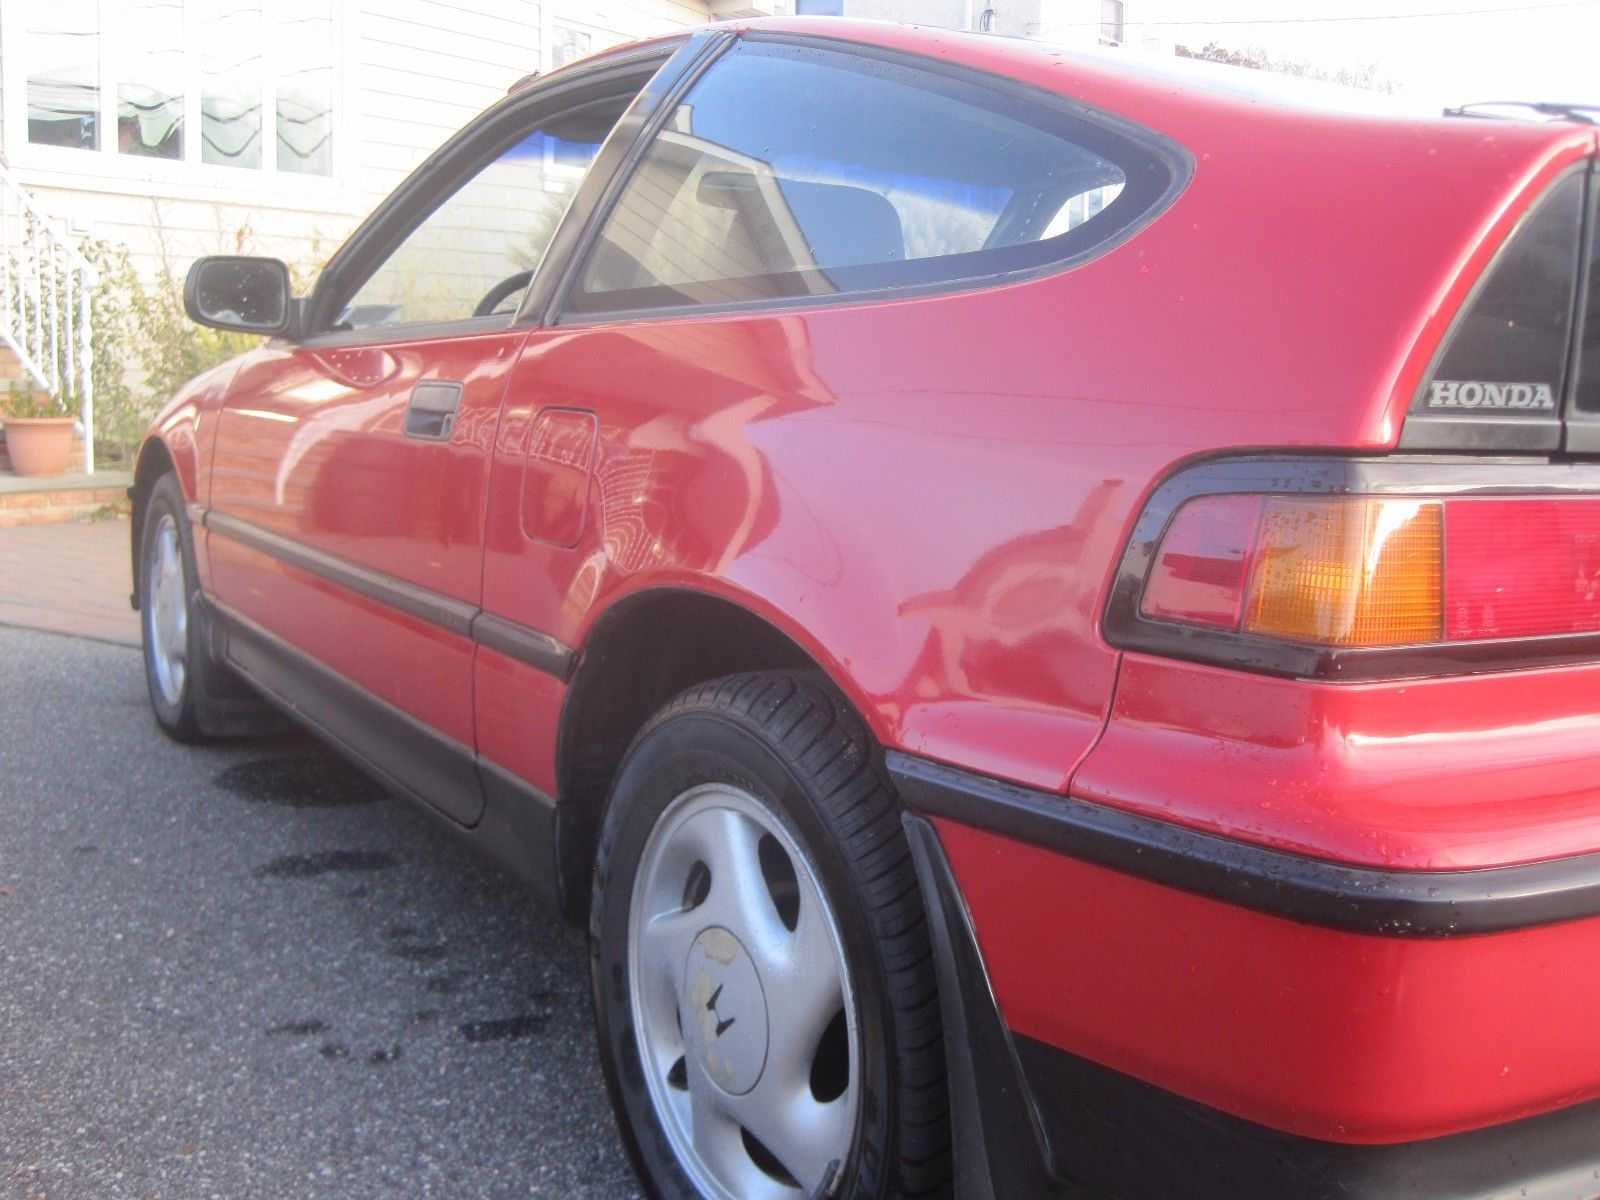 1991 Honda CRX si rear quarter detail